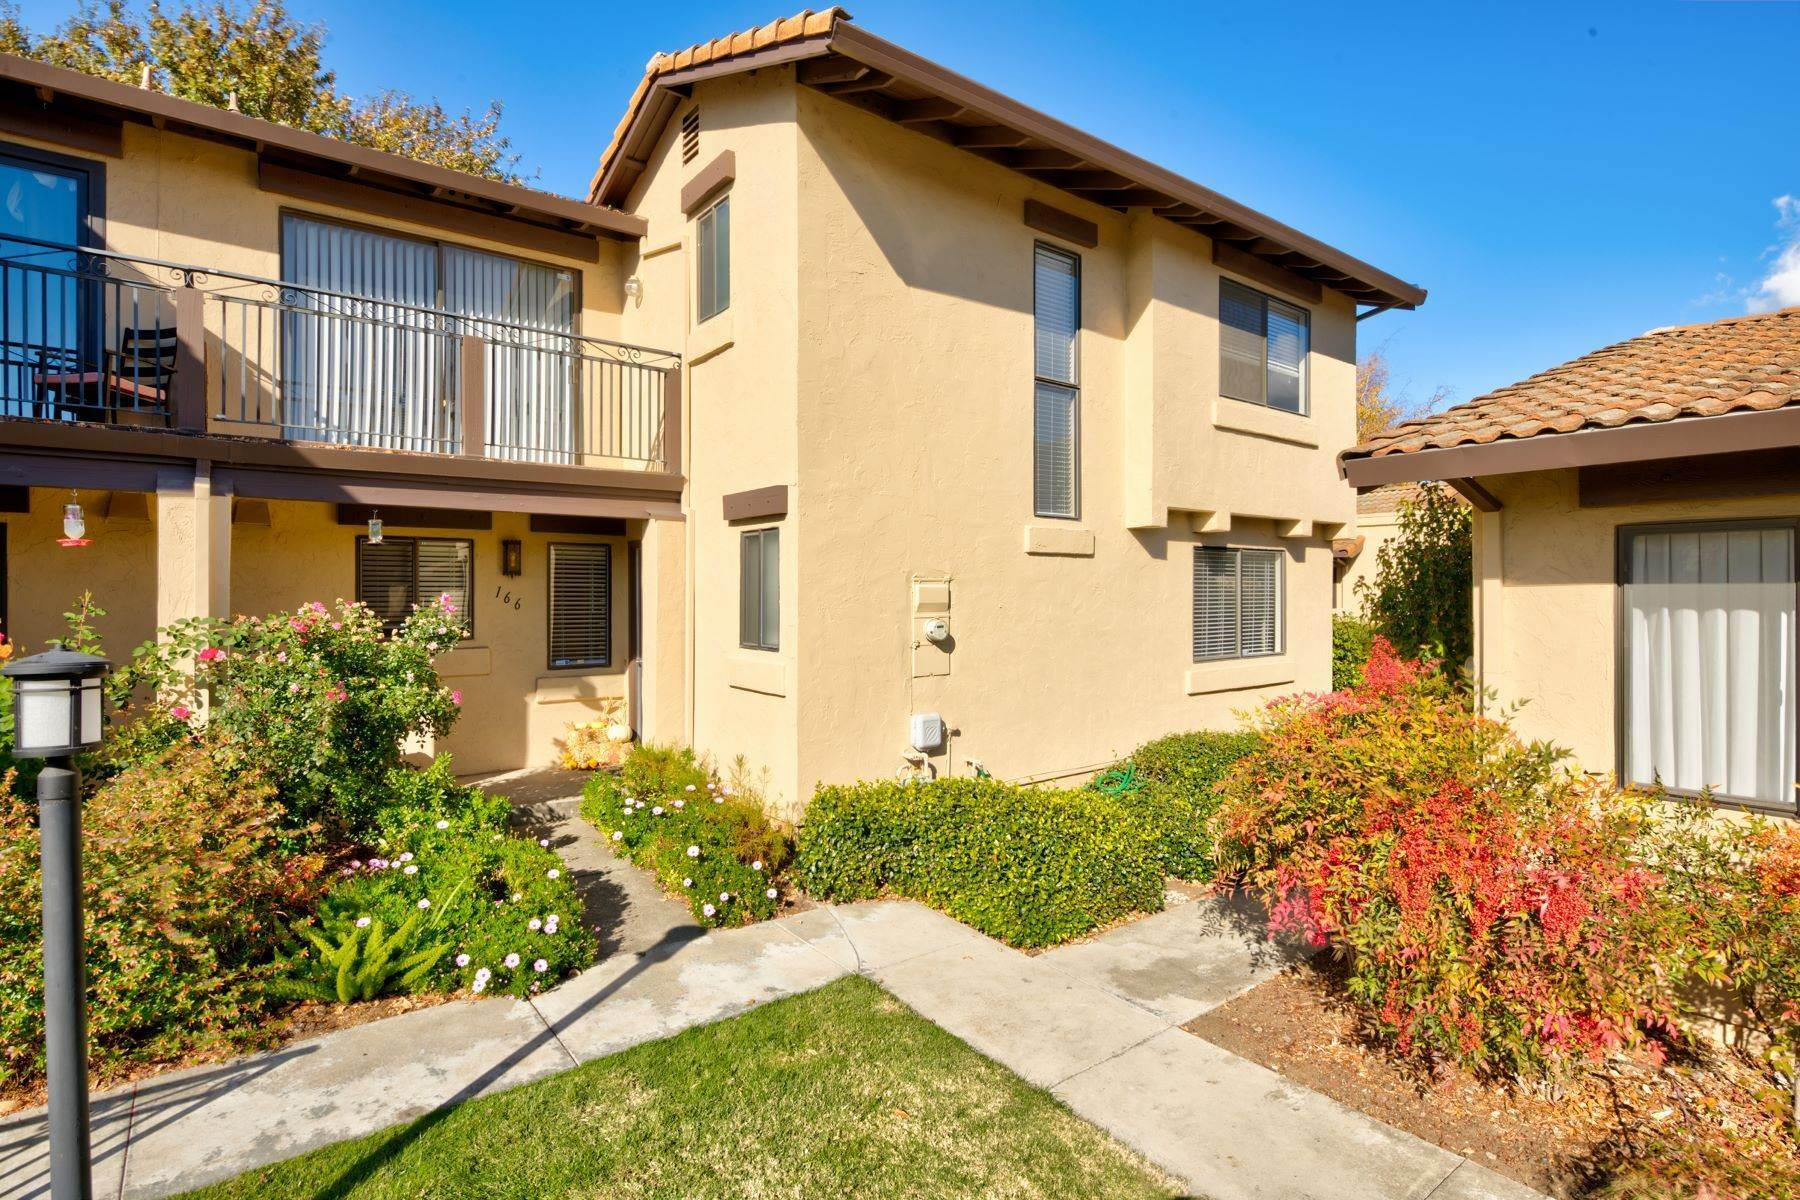 townhouses for Sale at La Mancha - Rare 3 Bedroom Town-home 166 La Mancha Dr Sonoma, California 95476 United States